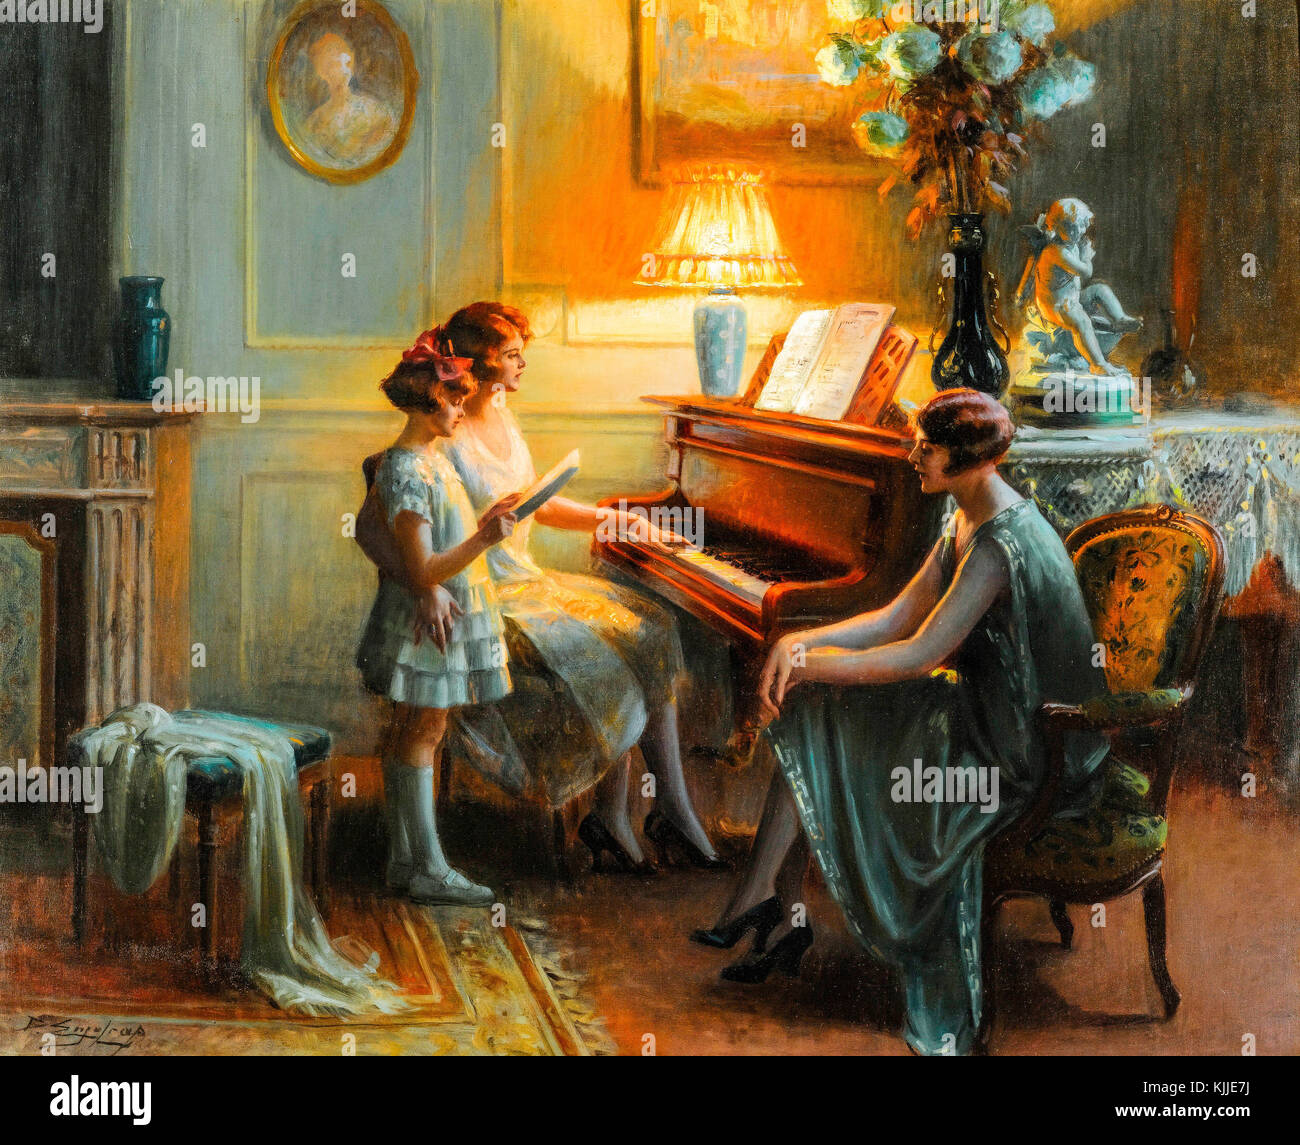 By the piano 1945. Delphin Enjolras.  In the room with a piano, a fireplace and a lighted lamp, two women are sitting - Stock Image